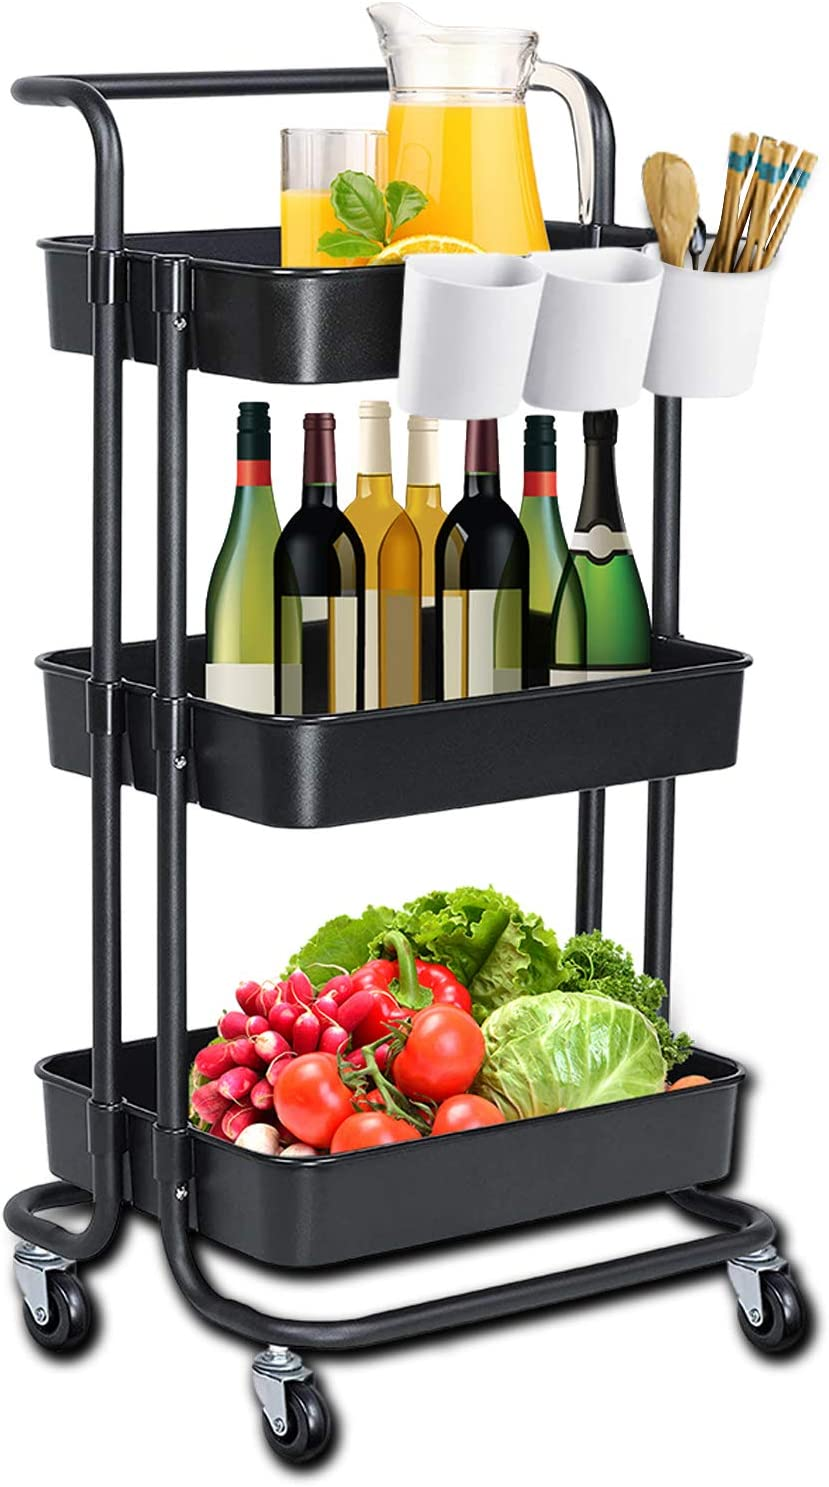 3-Tier Rolling Utility Cart,Storage Organizer Shelves Cart Multifunction Storage Trolley Service Cart with 3 Storage Buckets and Lockable Wheels,Easy Assembly for Bathroom, Kitchen, Office (Black)